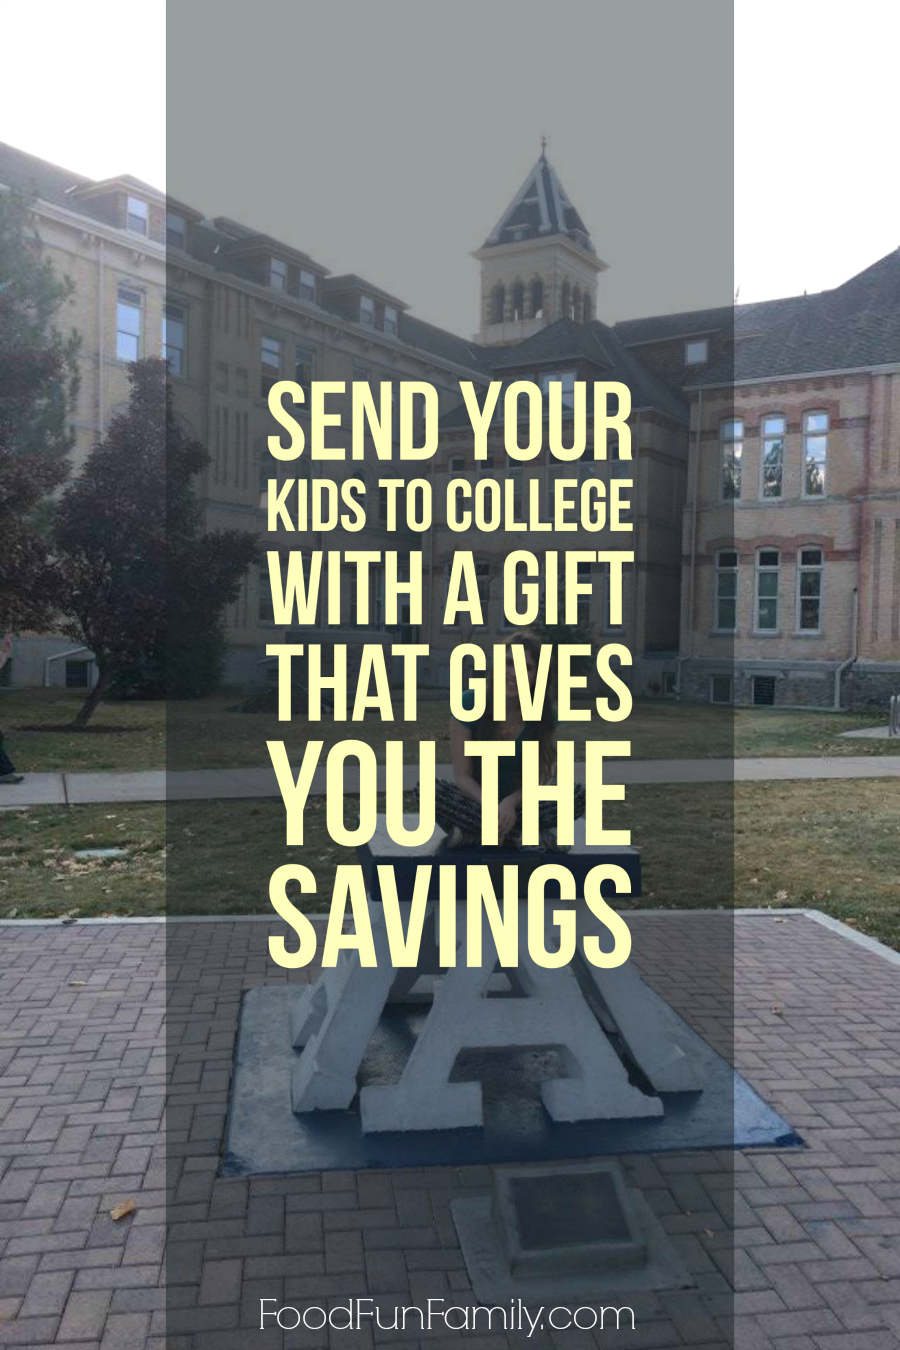 Send Your Kids to College with a Gift that Gives You the Savings